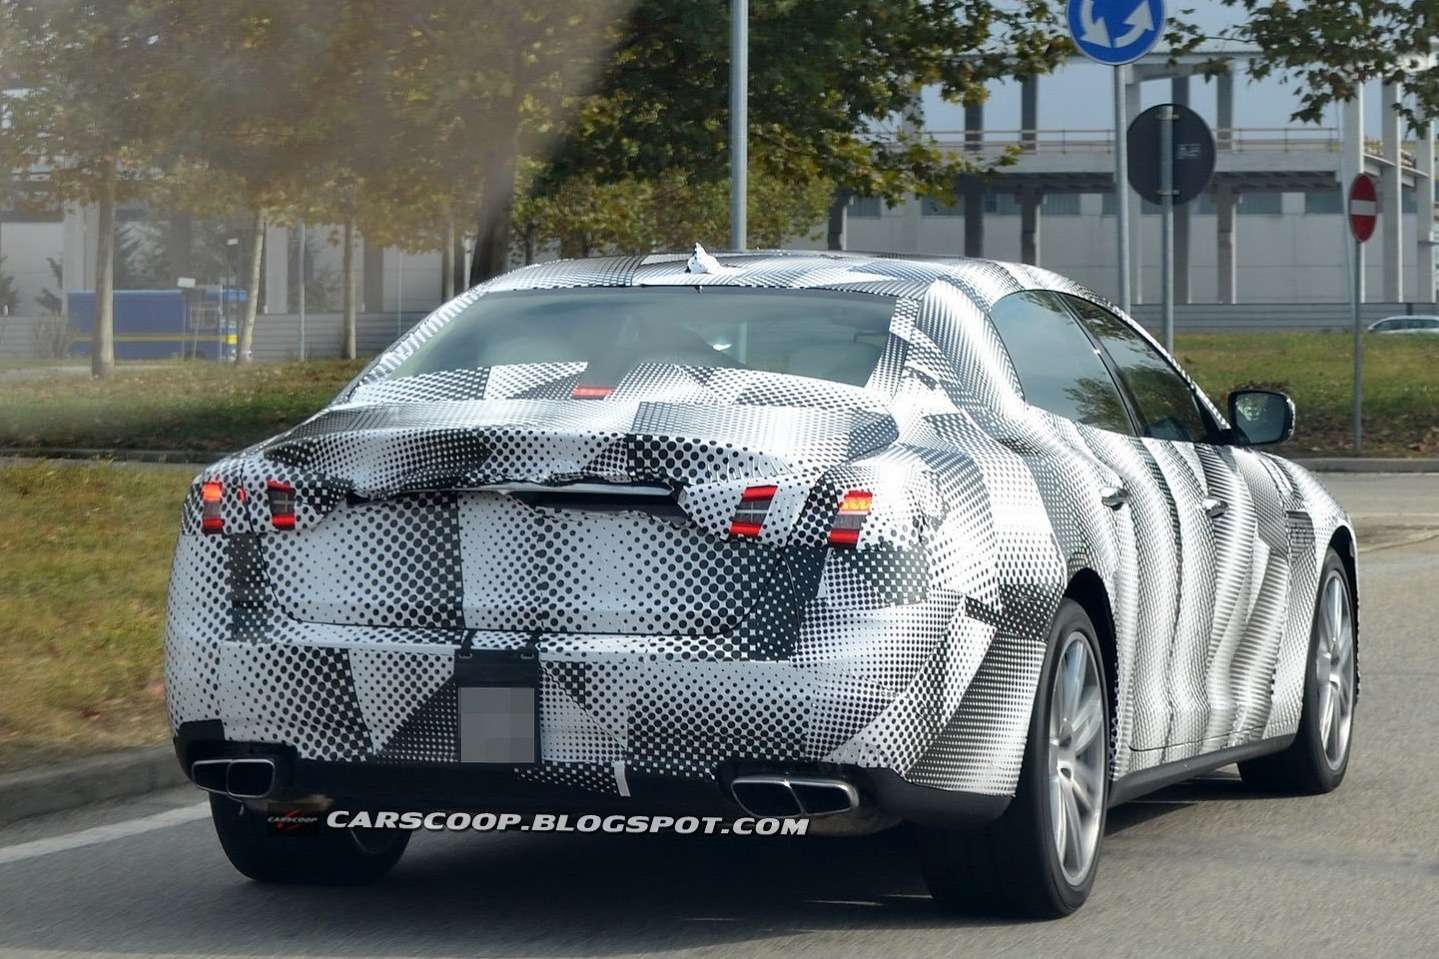 NewMaserati Quattroporte test prototype side-rear view 2_no_copyright